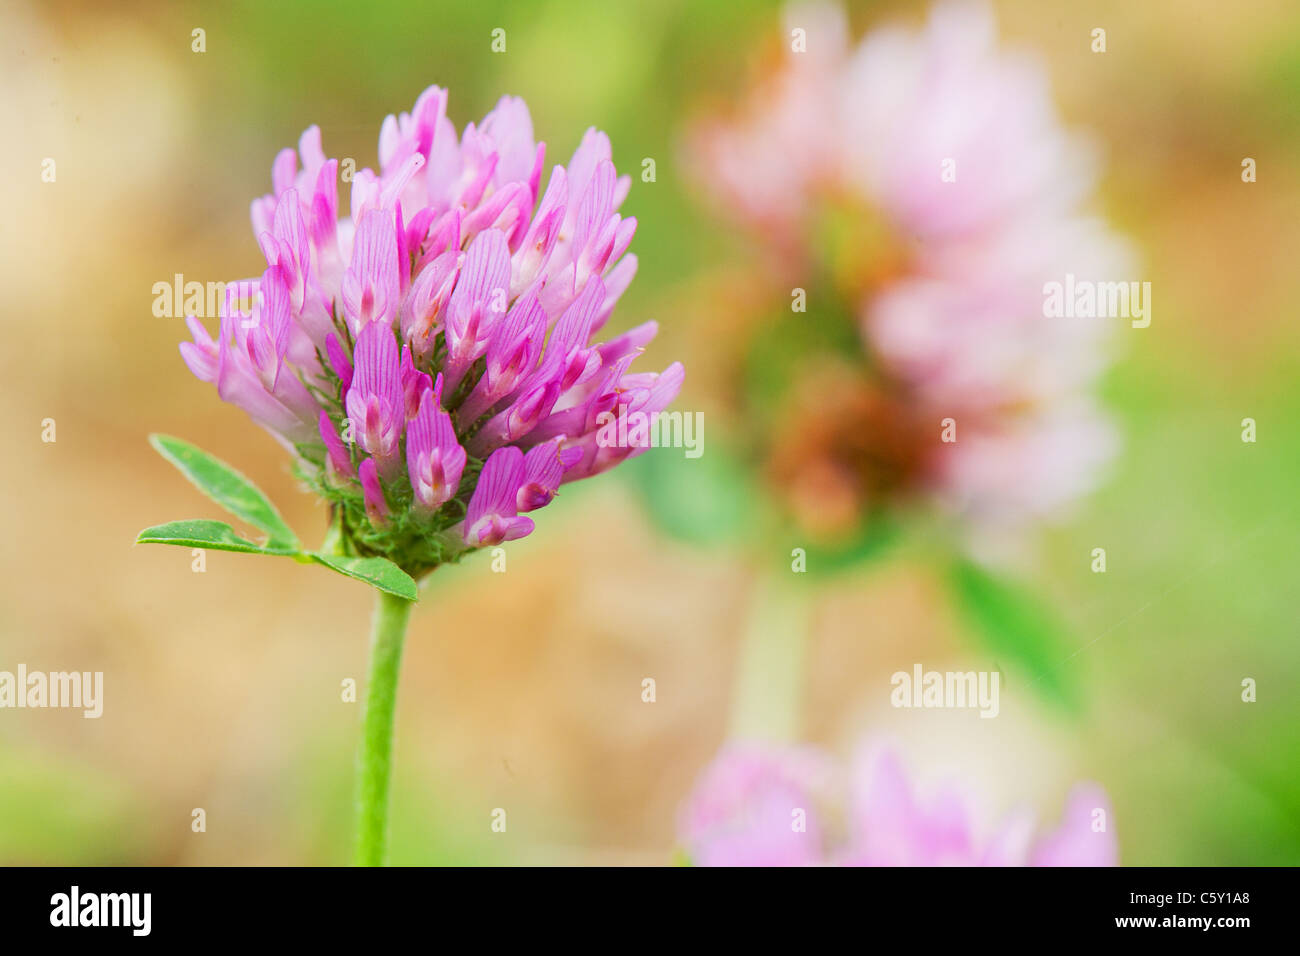 Purple Clover Flower In Nature Environment Outdoor Stock Photo